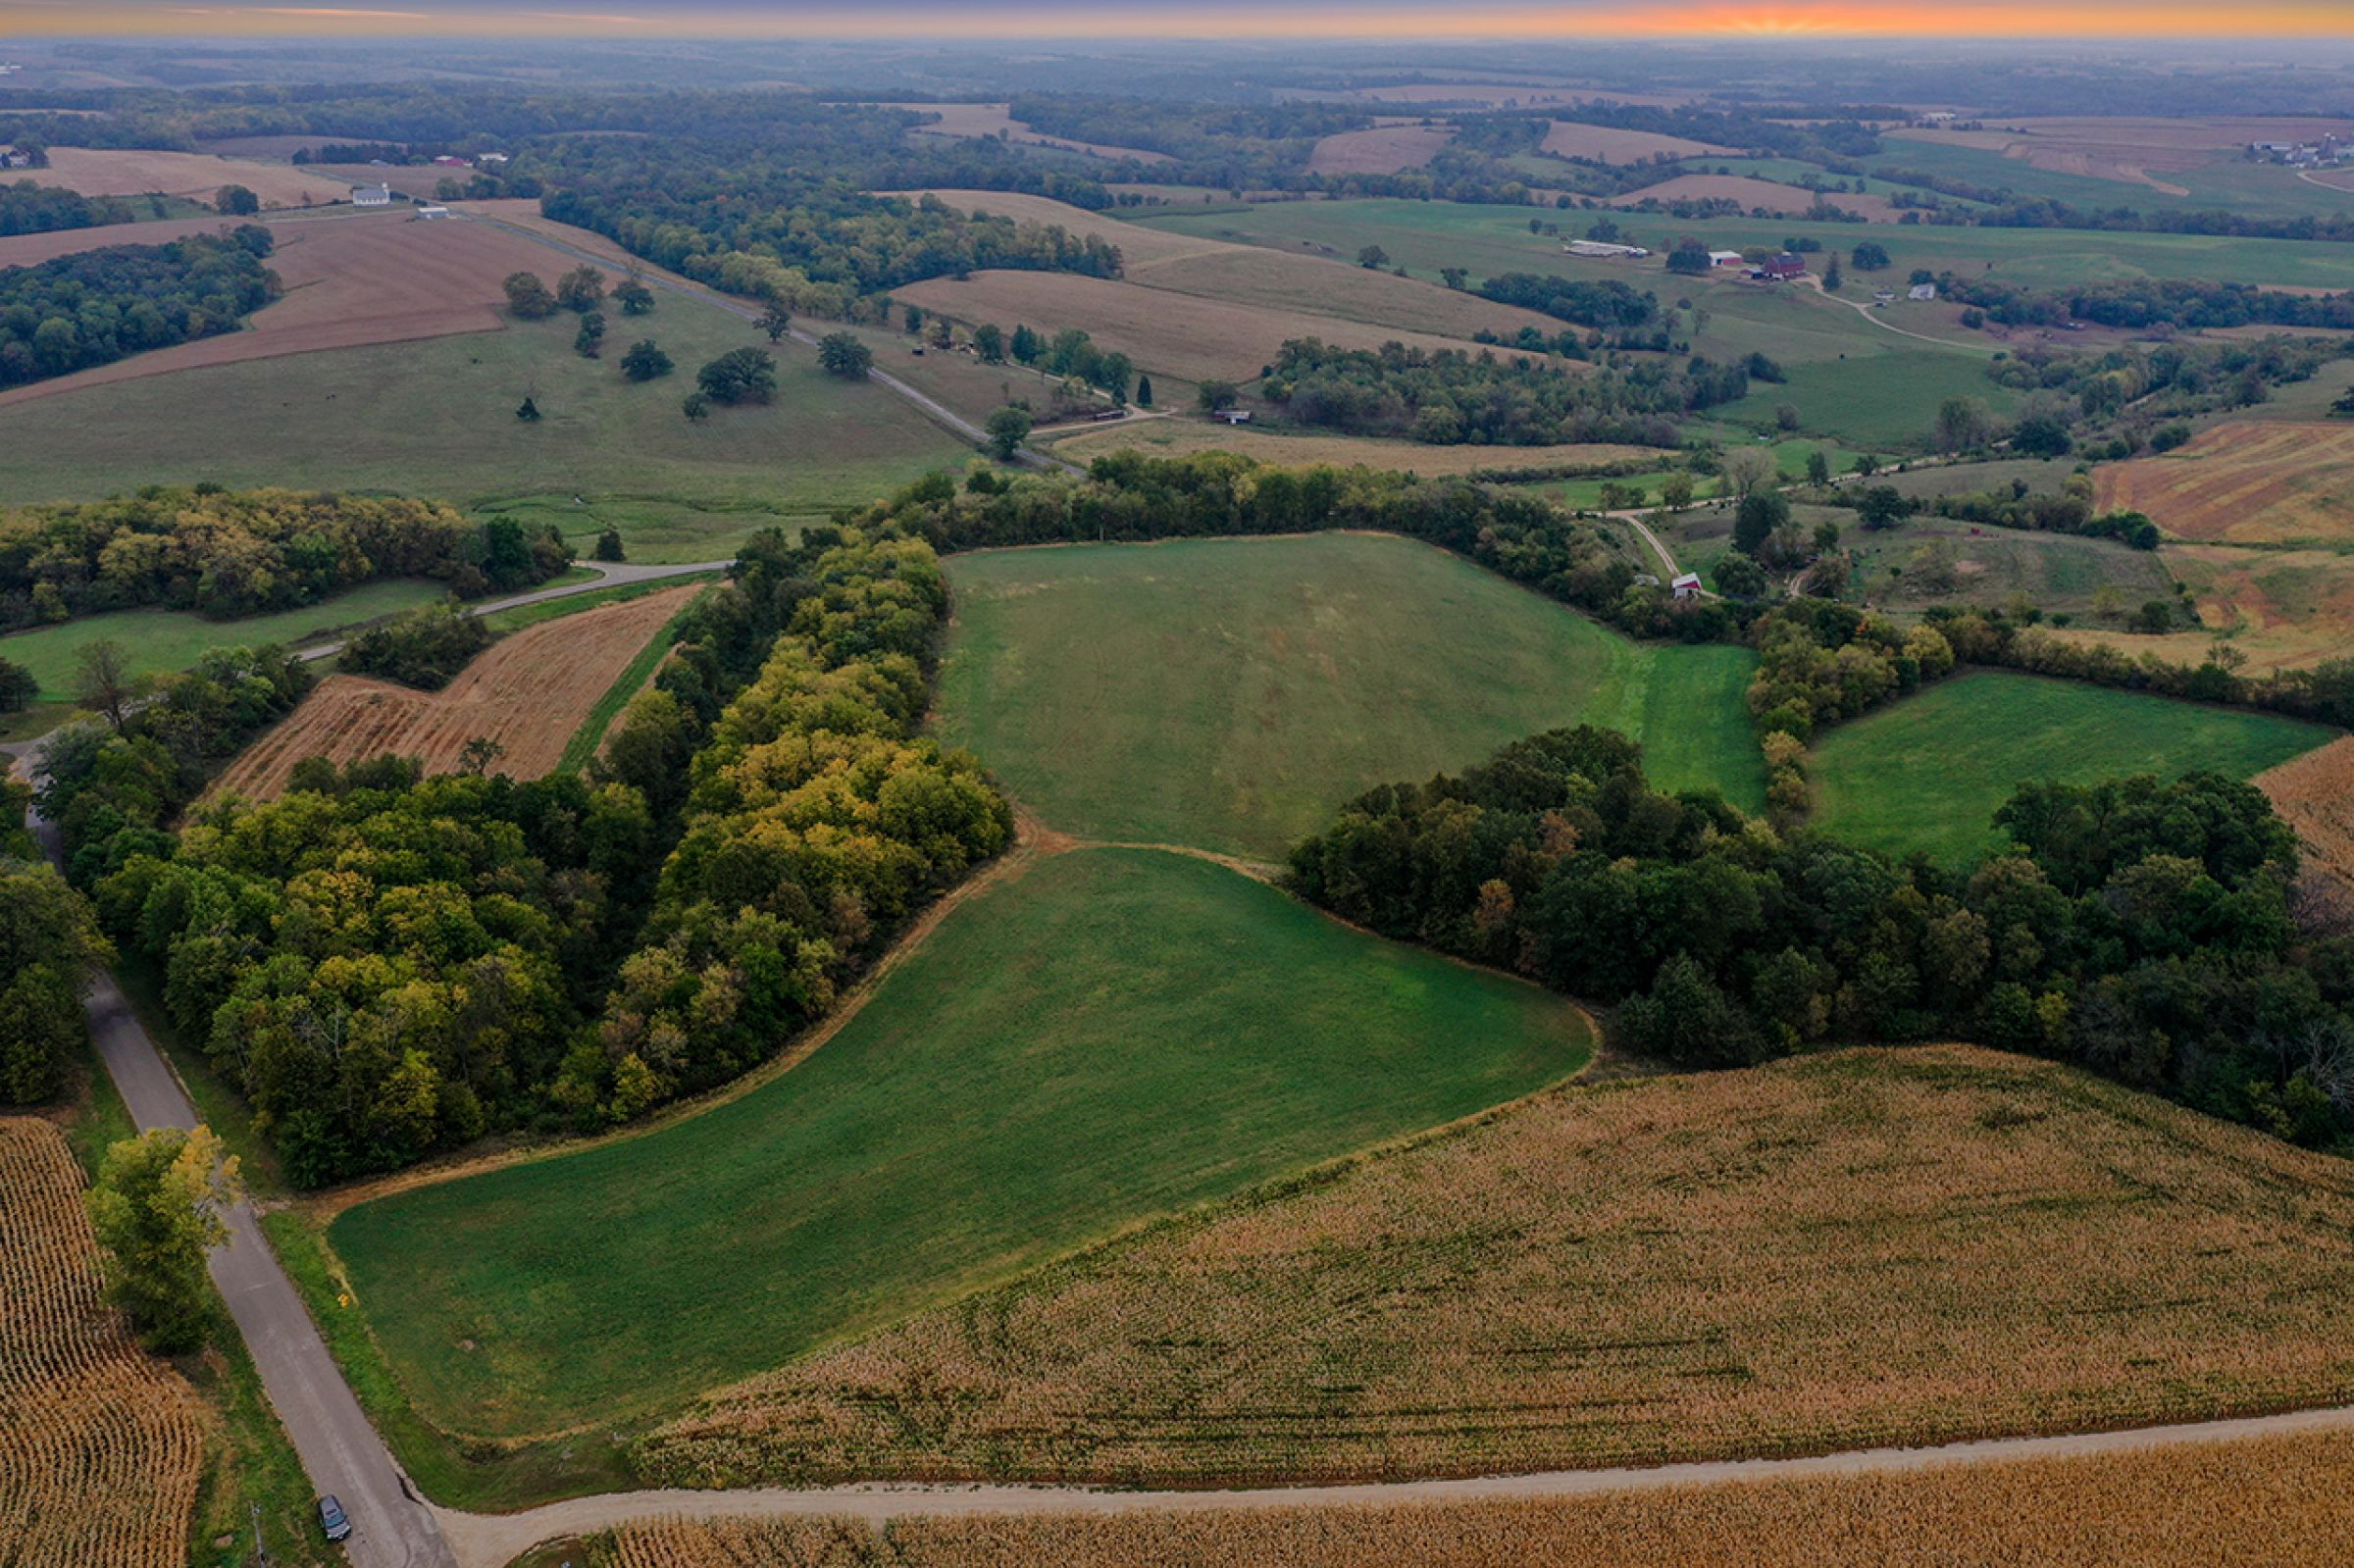 auctions-land-lafayette-county-wisconsin-138-acres-listing-number-15758-4-2021-09-21-155736.jpg